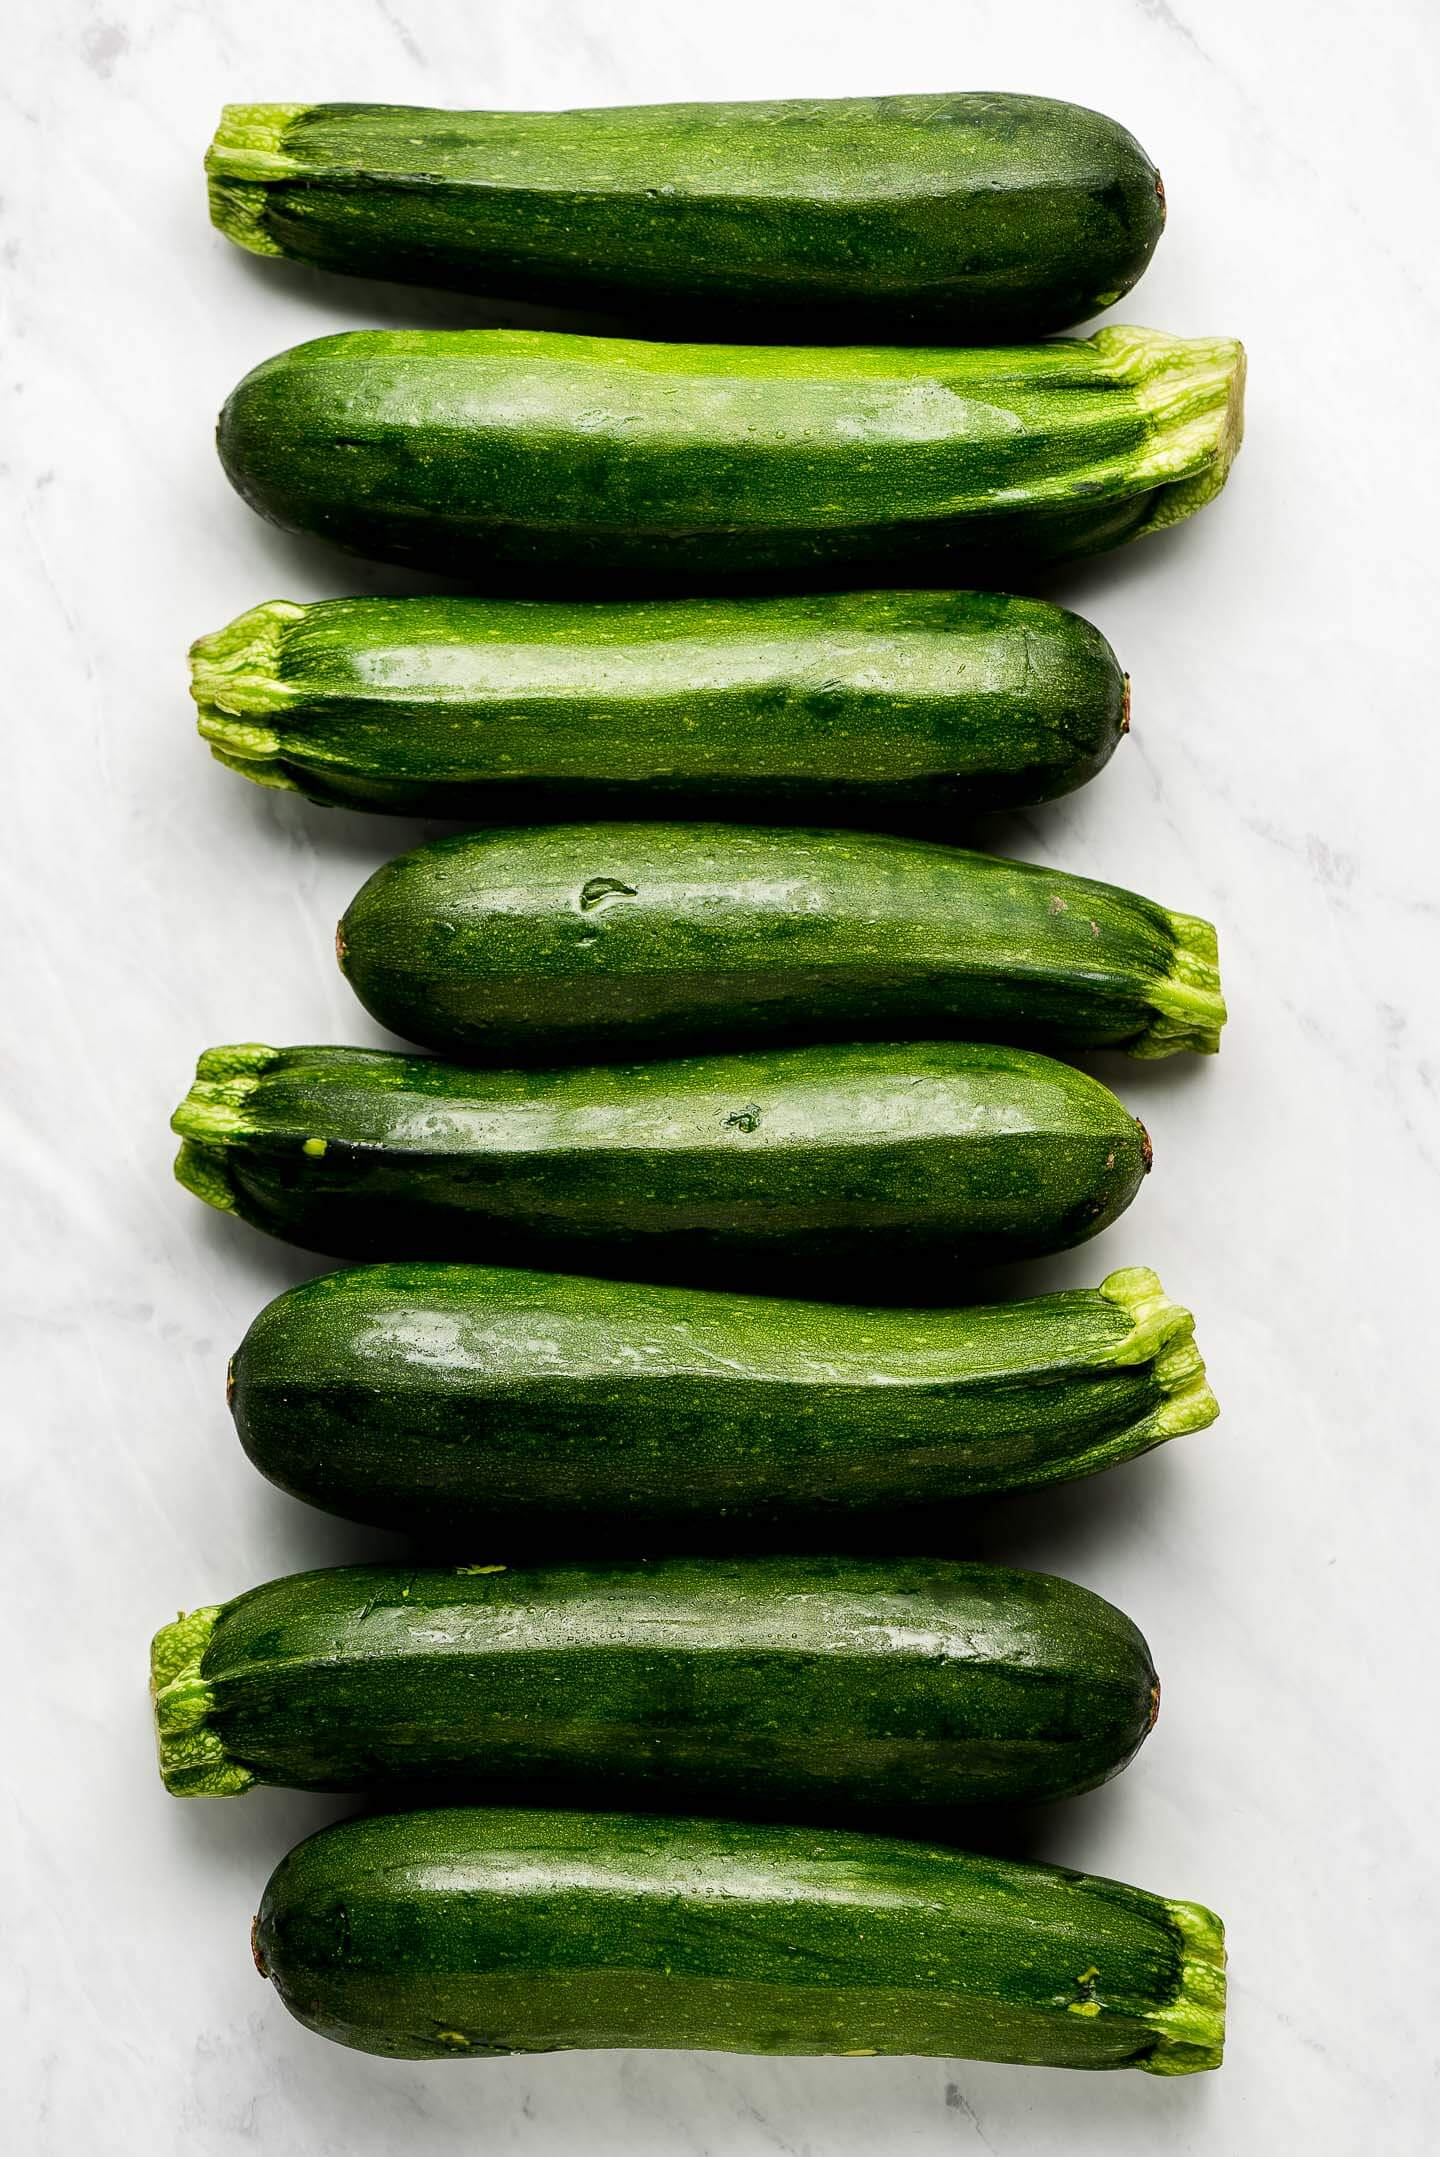 Multiple zucchini lined up on a marble surface.